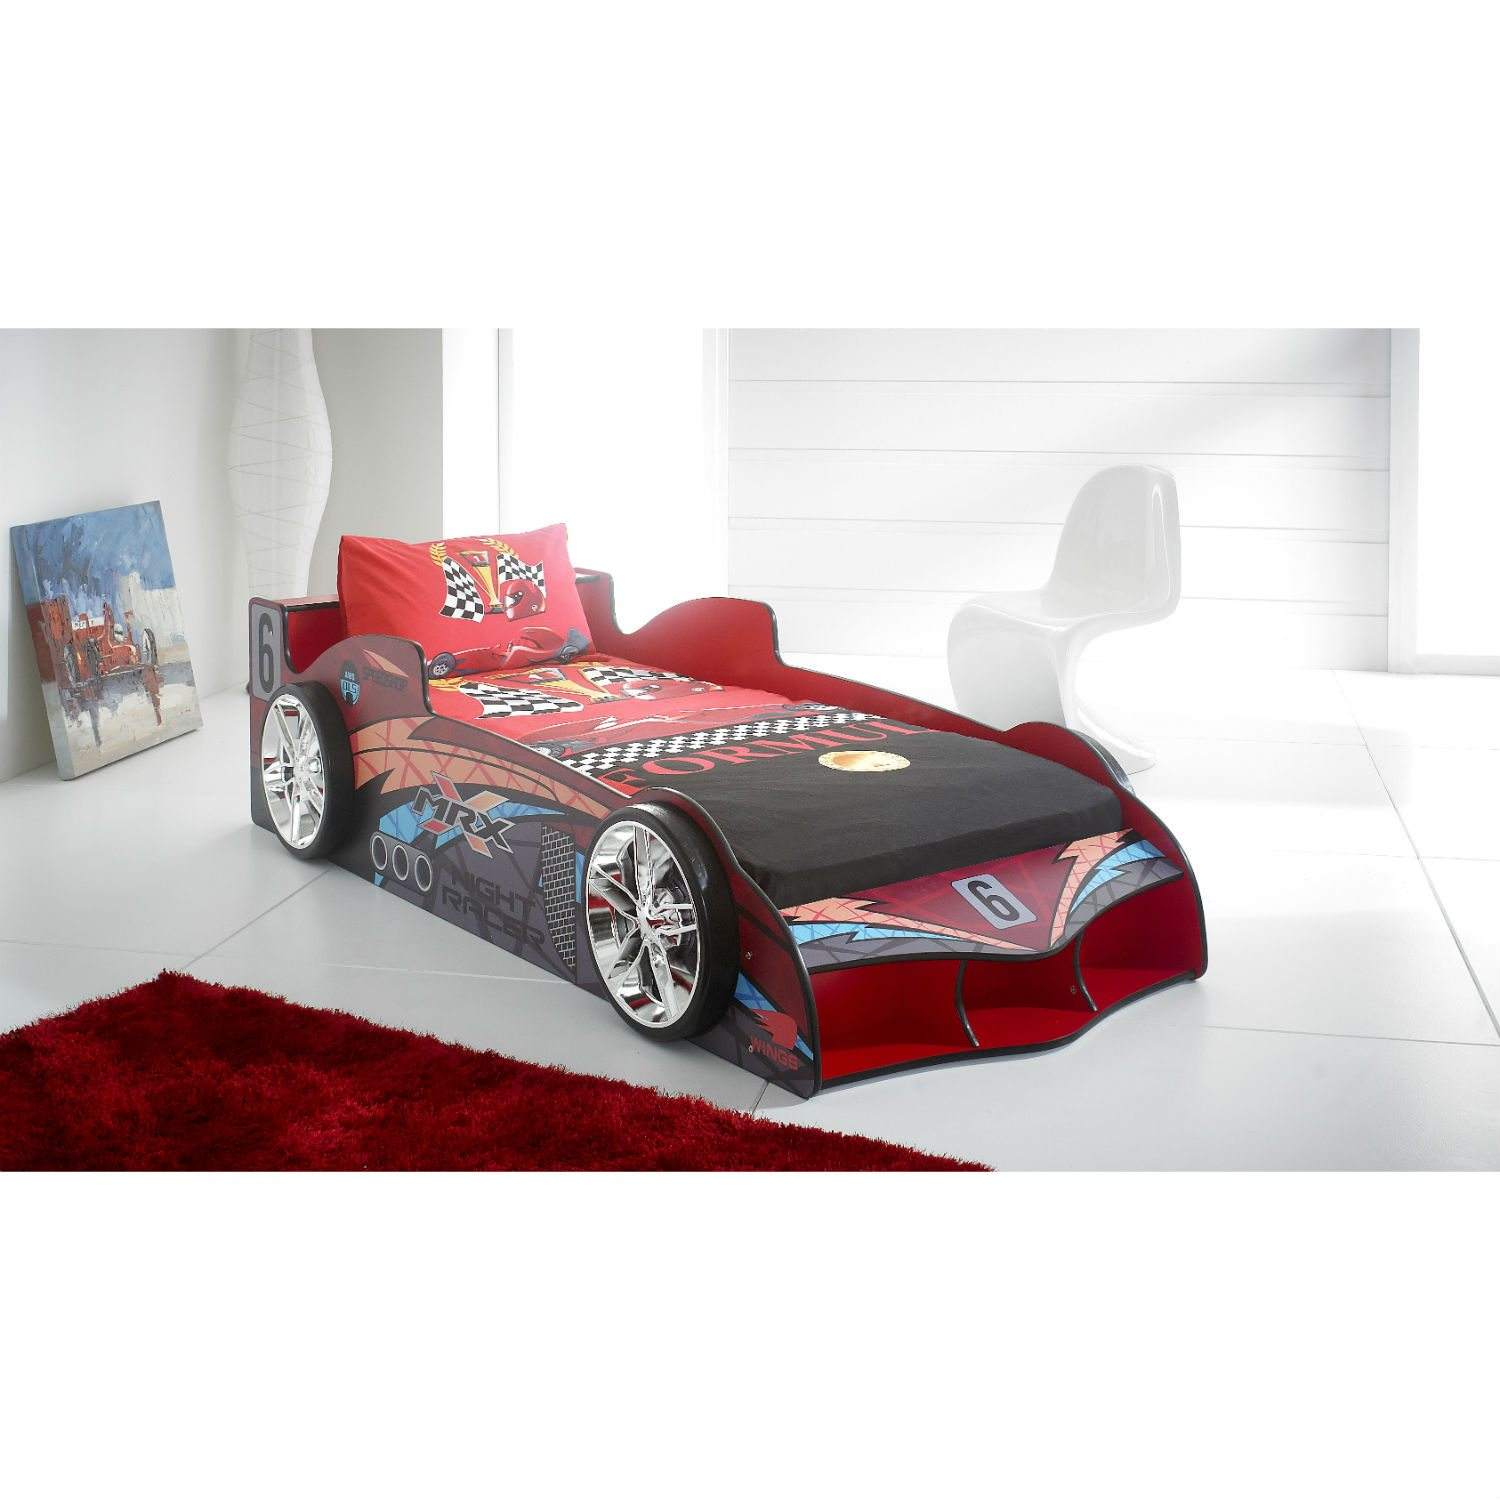 race silver dining and bed beds dp metal furniture twin of black com kitchen car amazon max america